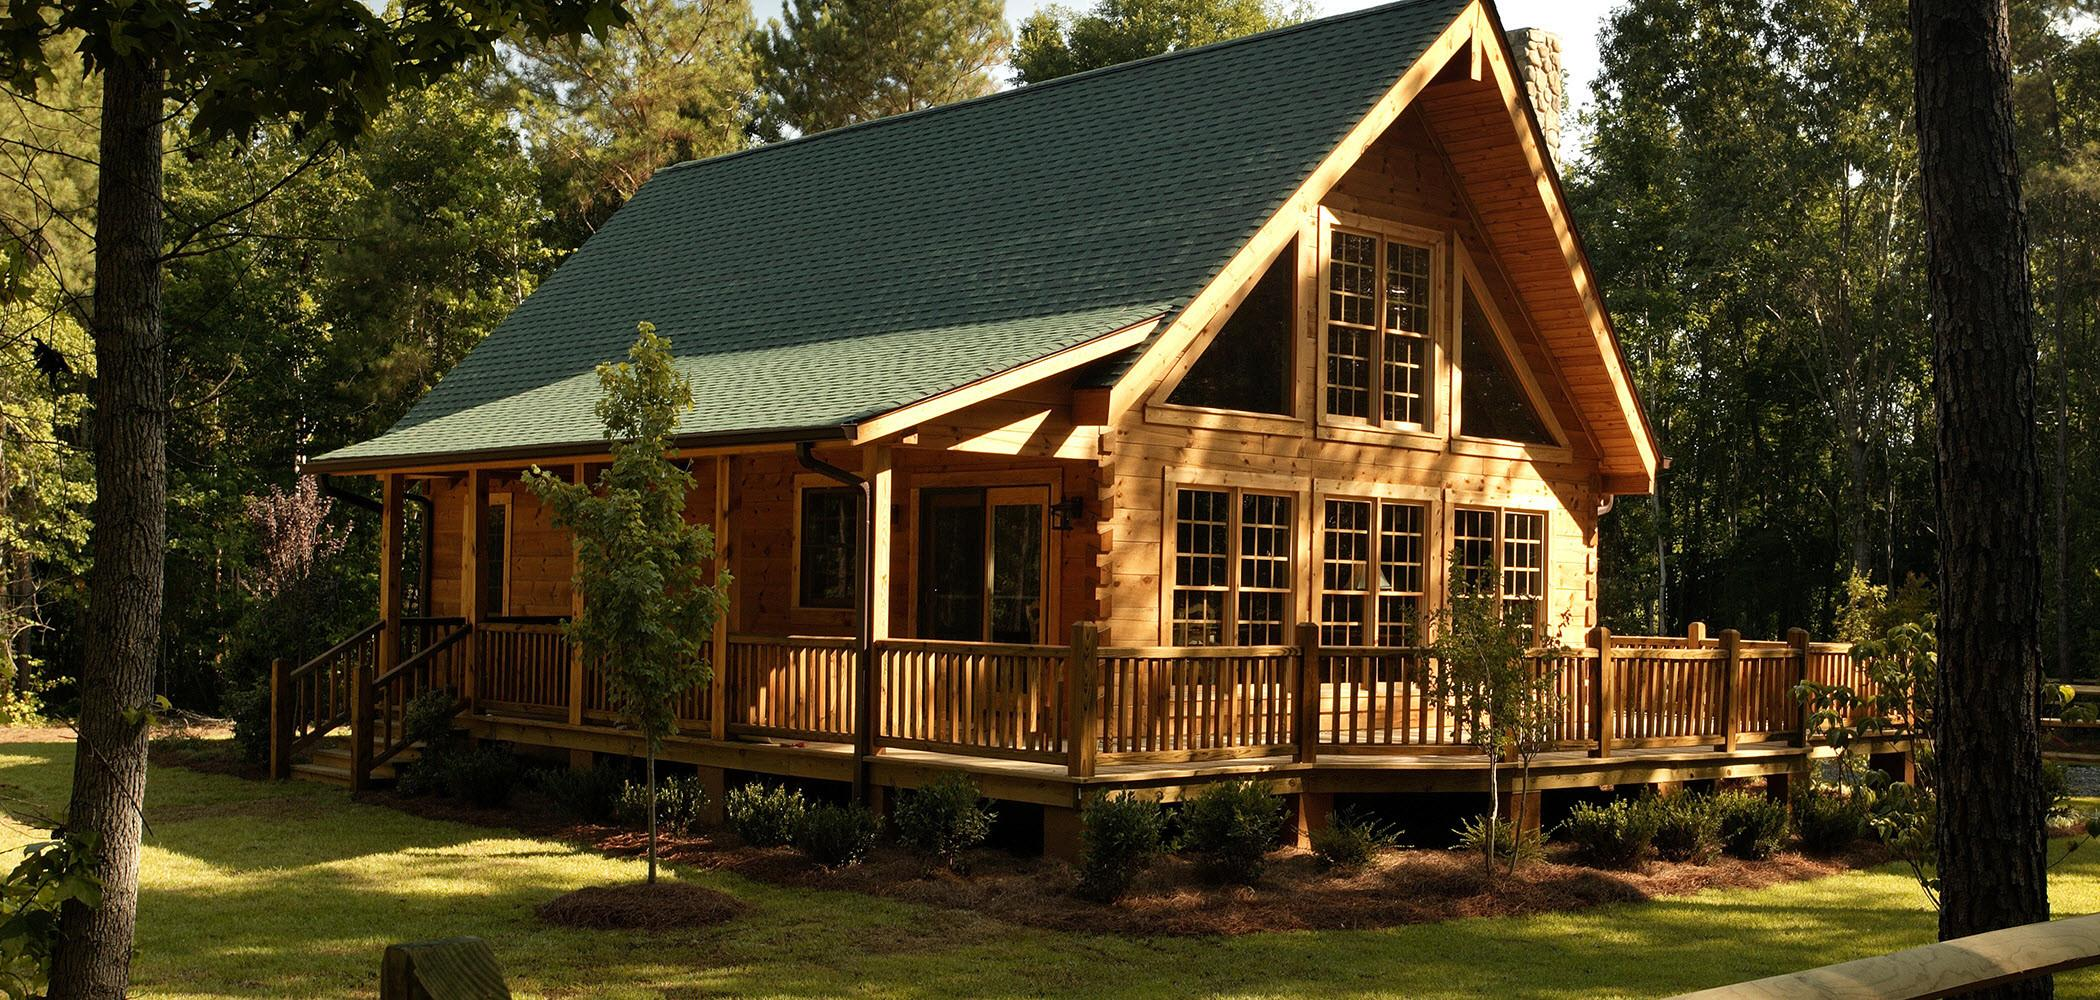 Highest Density Log Cabins Cities Countries